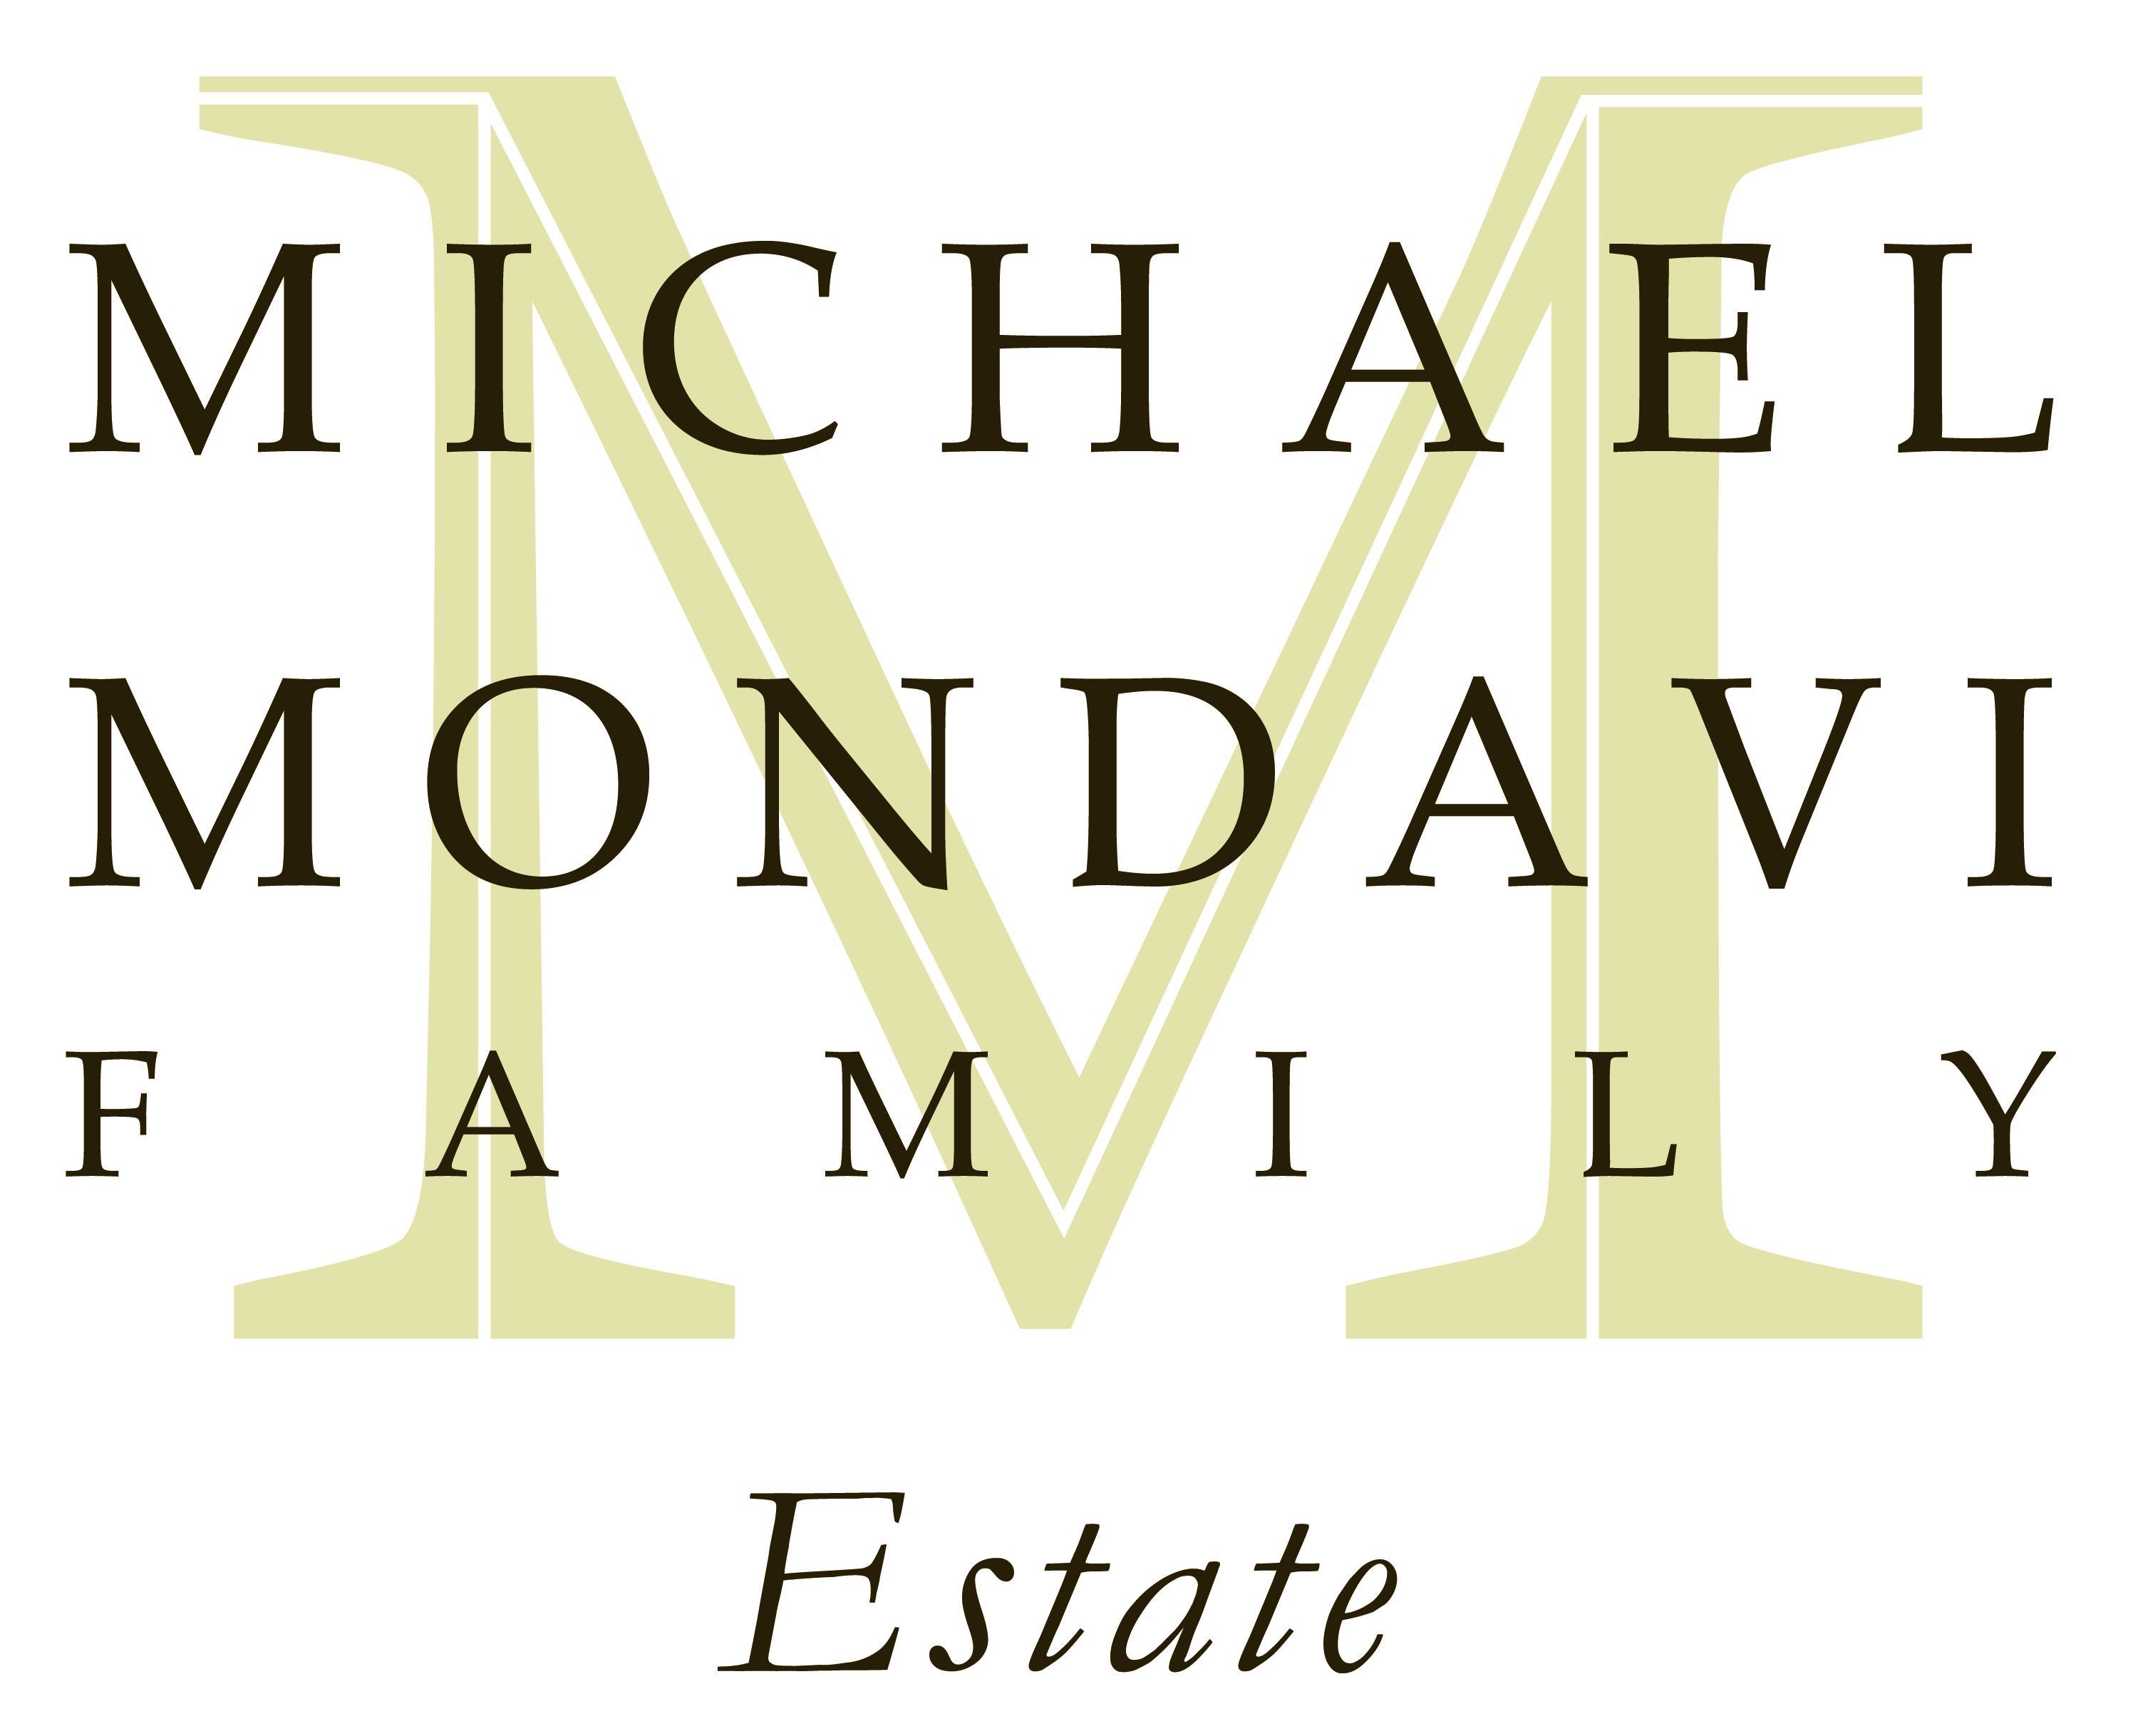 mondavi-estate-logo